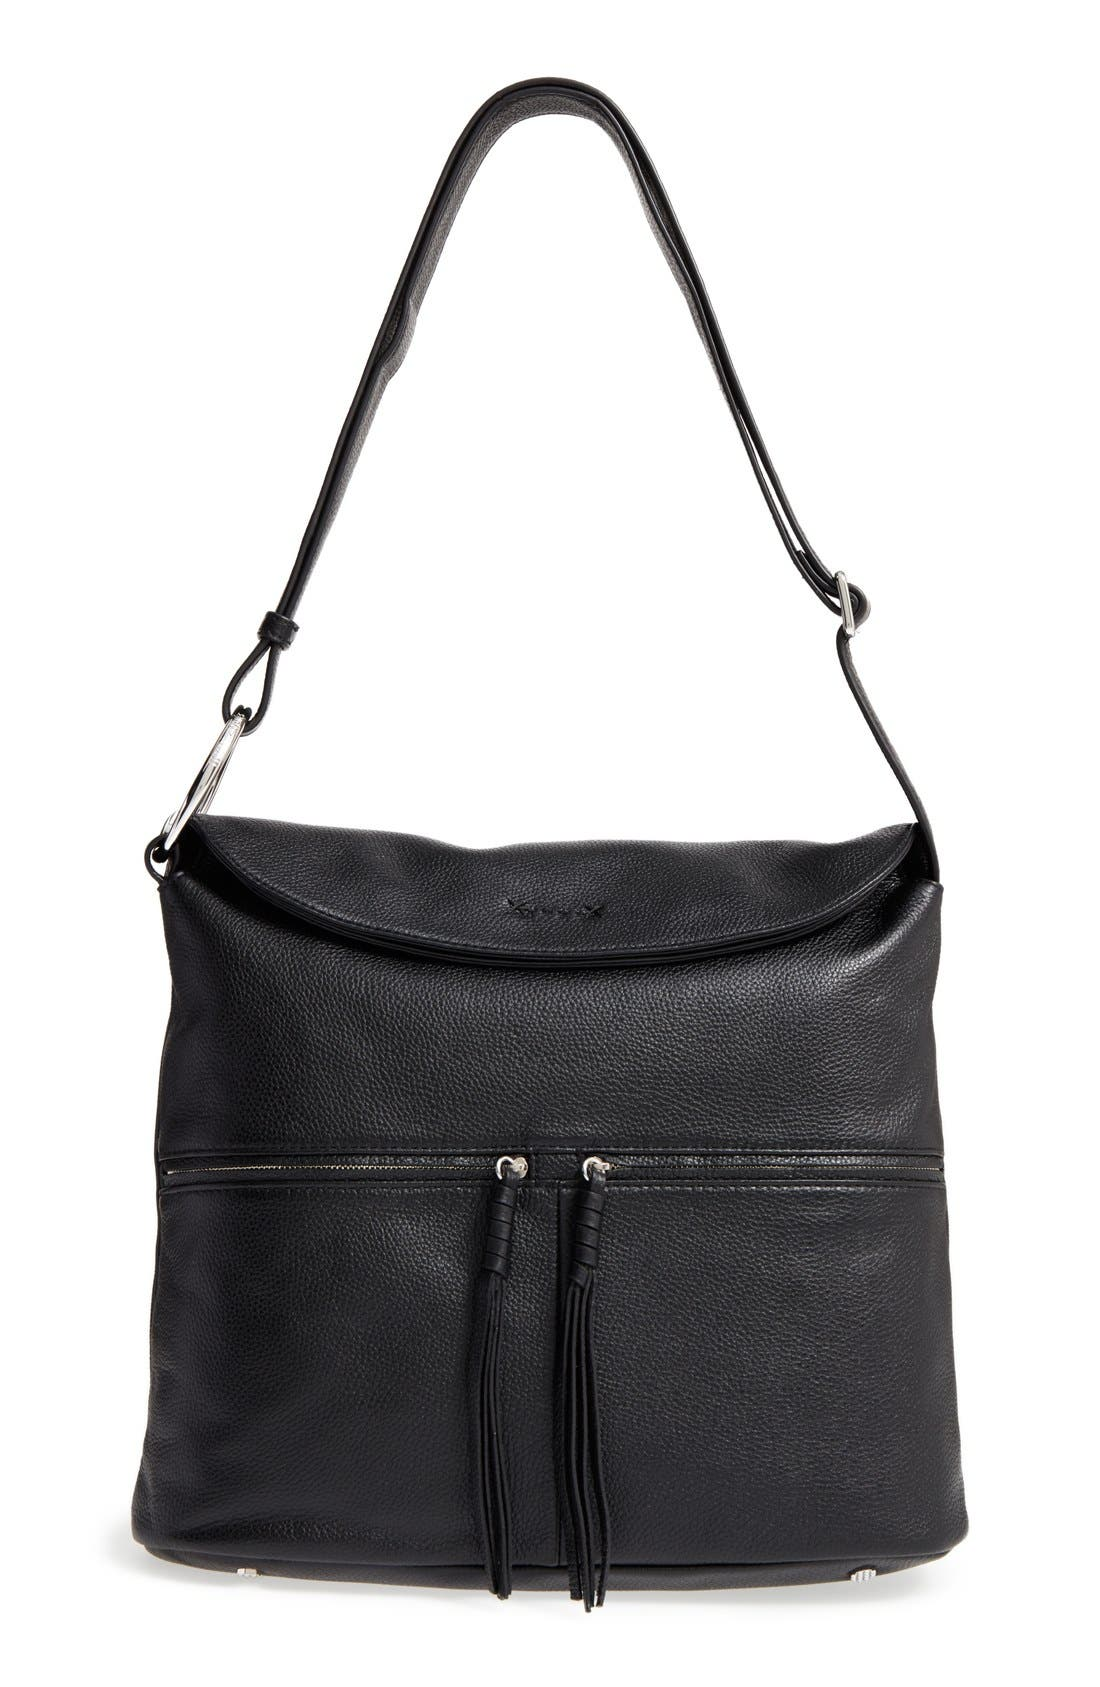 Finley Leather Hobo Bag,                         Main,                         color, 001